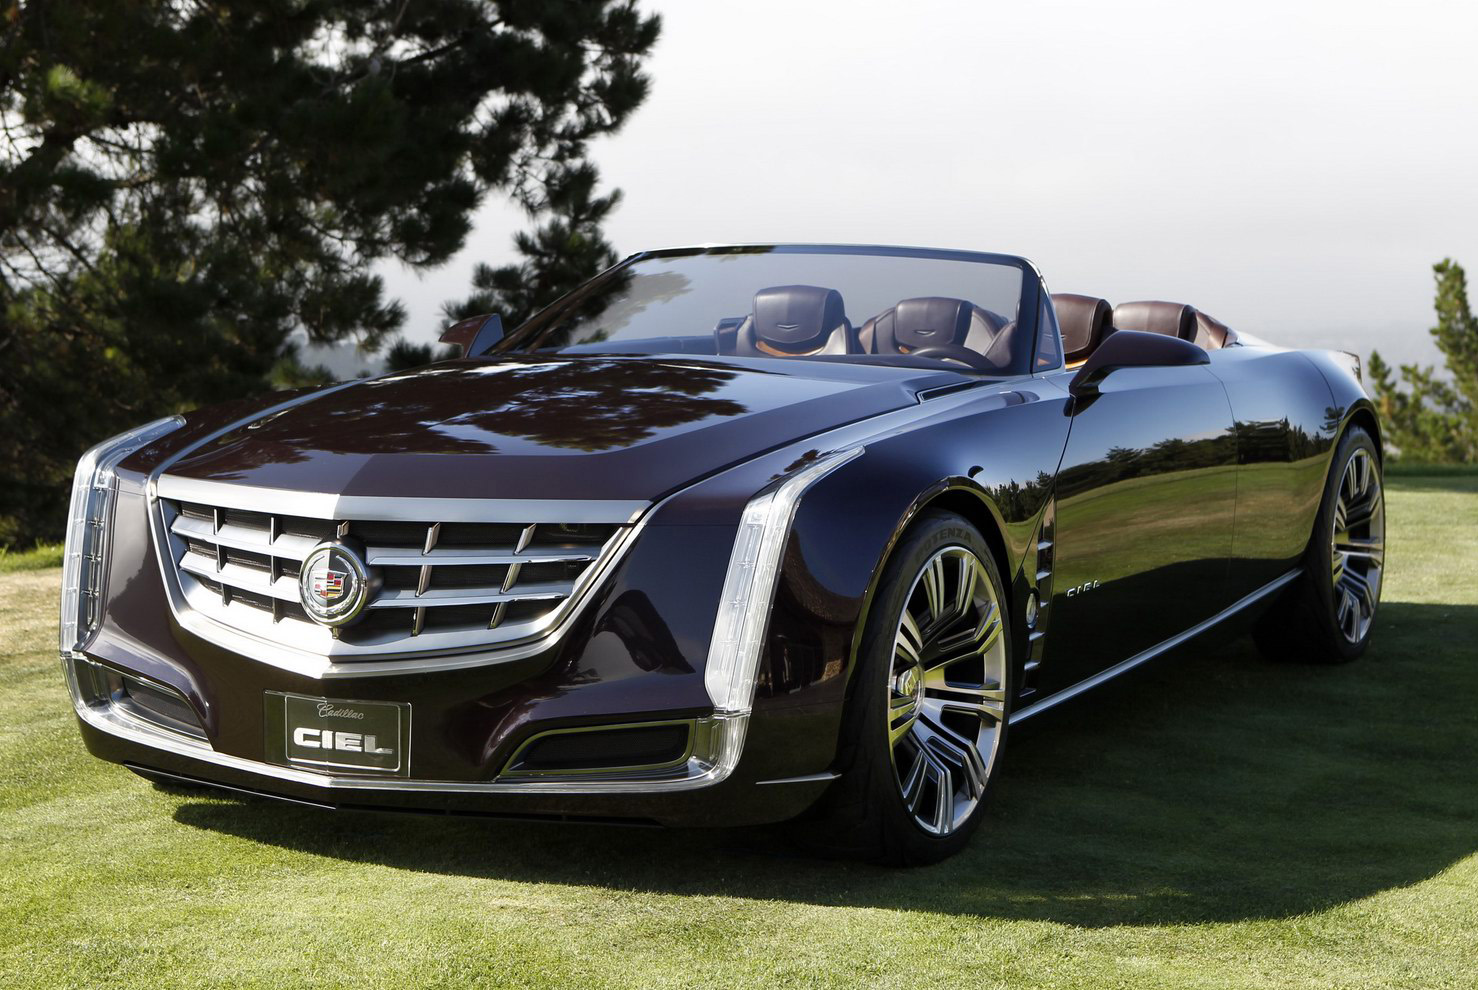 Cadillac Ciel Door Convertible Concept Auto Car - 4 door convertible bmw